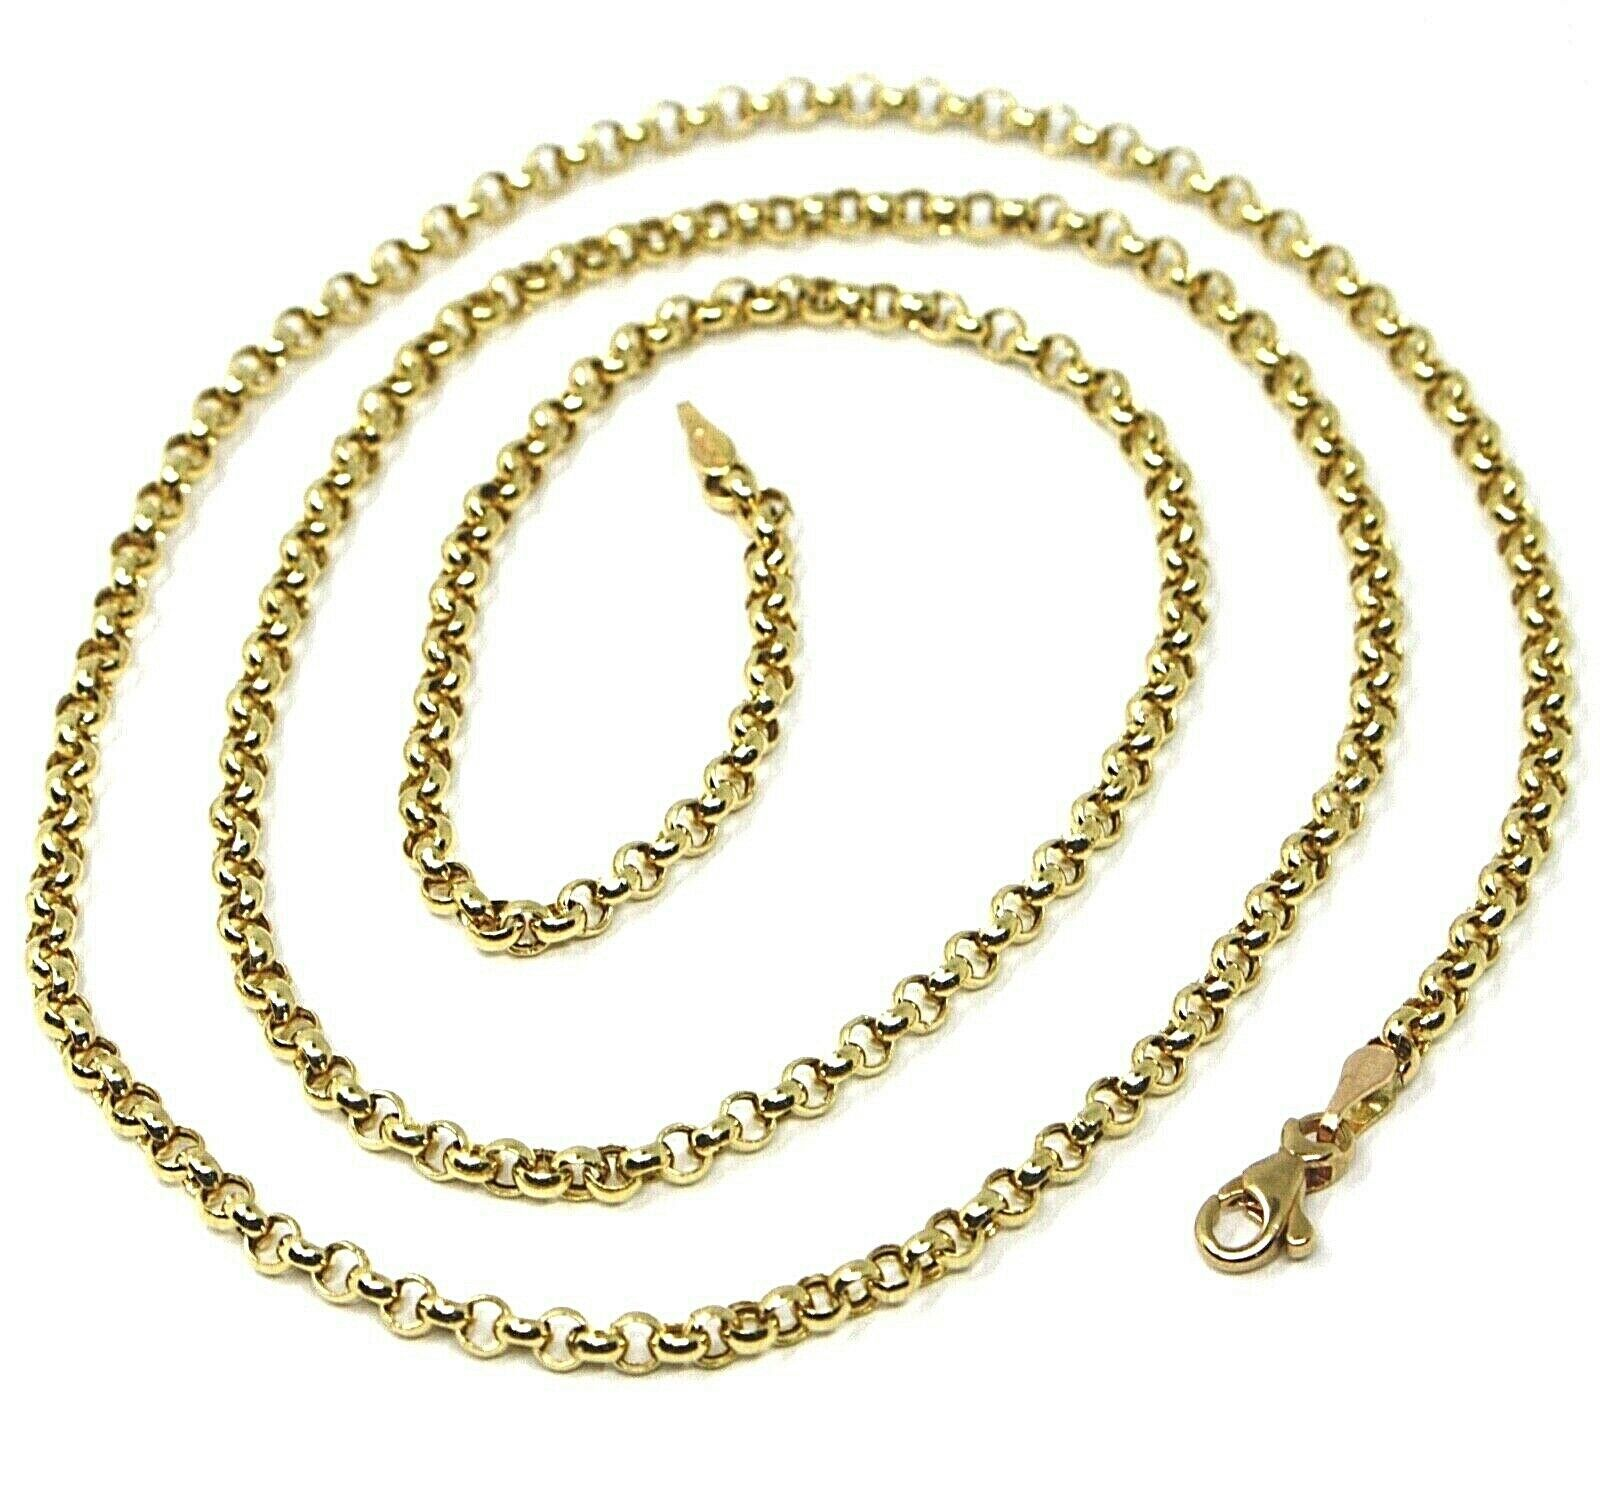 18K YELLOW GOLD ROLO CHAIN 2.5 MM, 16 INCHES, NECKLACE, CIRCLES, MADE IN ITALY